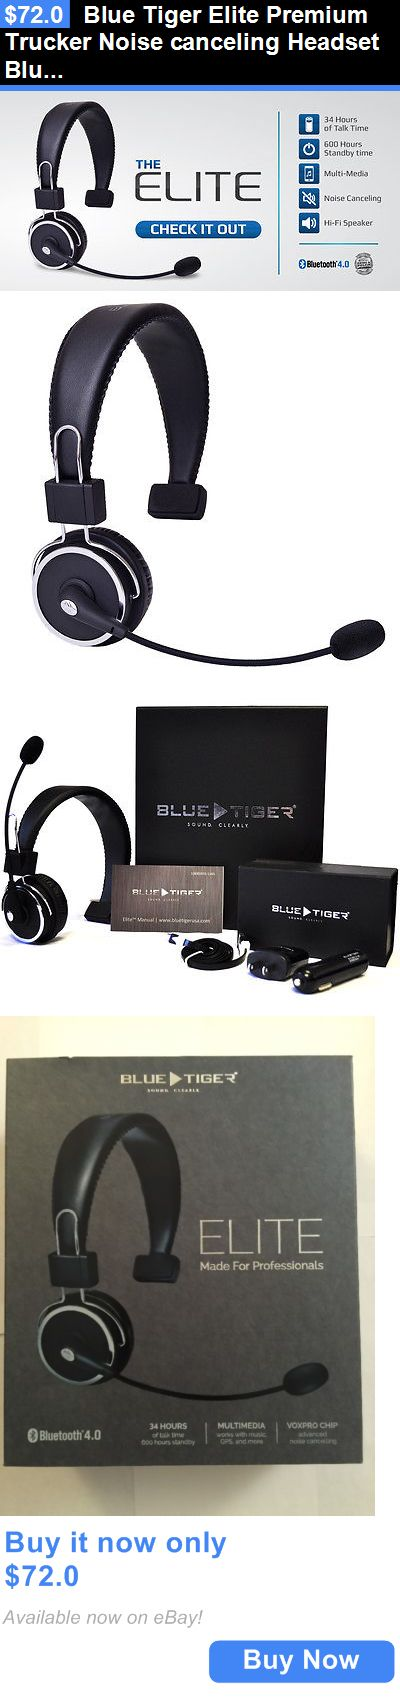 Headsets and Earpieces: Blue Tiger Elite Premium Trucker Noise Canceling Headset Bluetooth New BUY IT NOW ONLY: $72.0